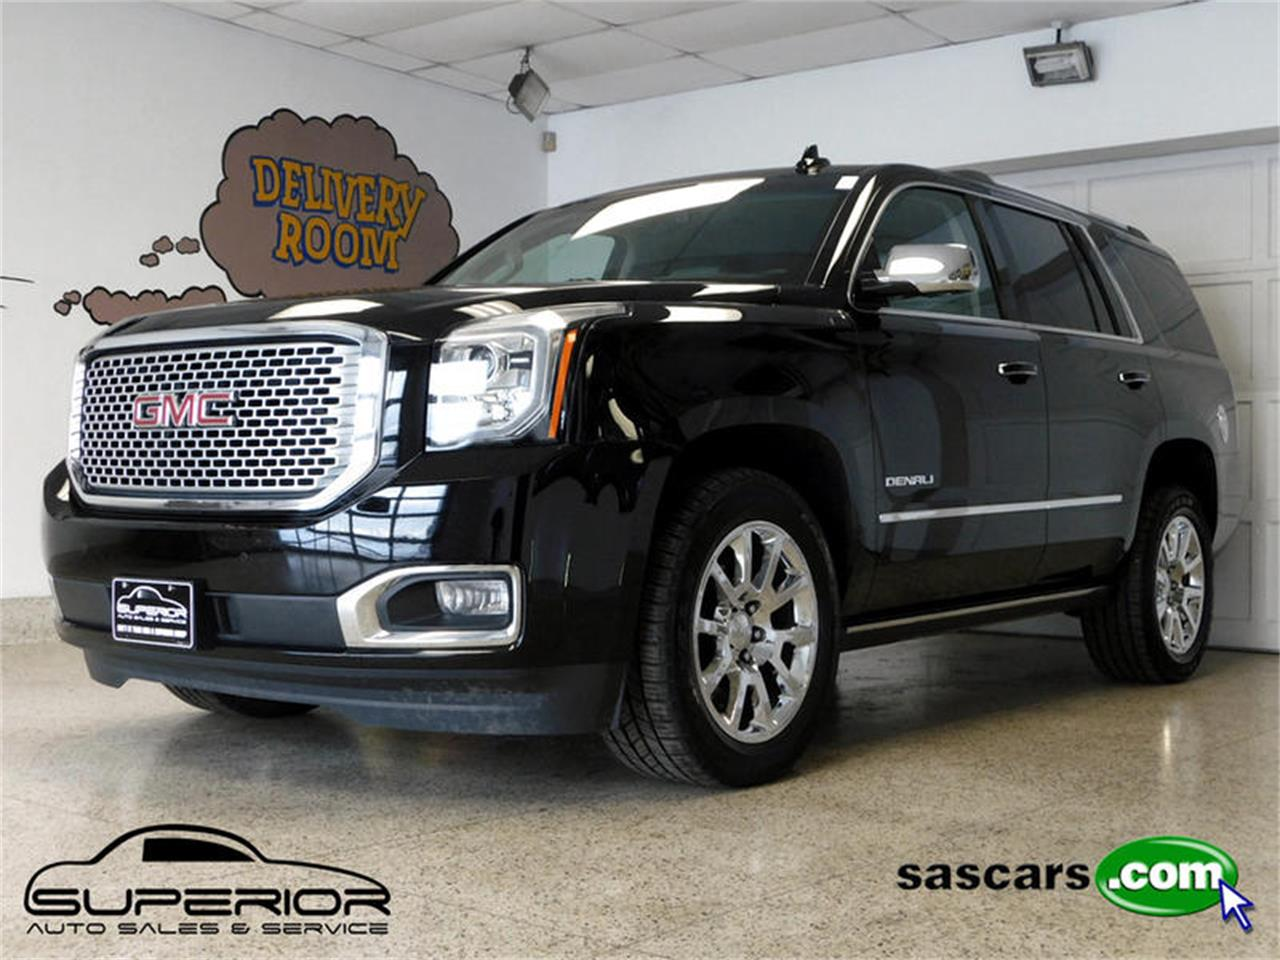 Large Picture of 2015 Yukon Denali located in New York - $39,500.00 - P3JC